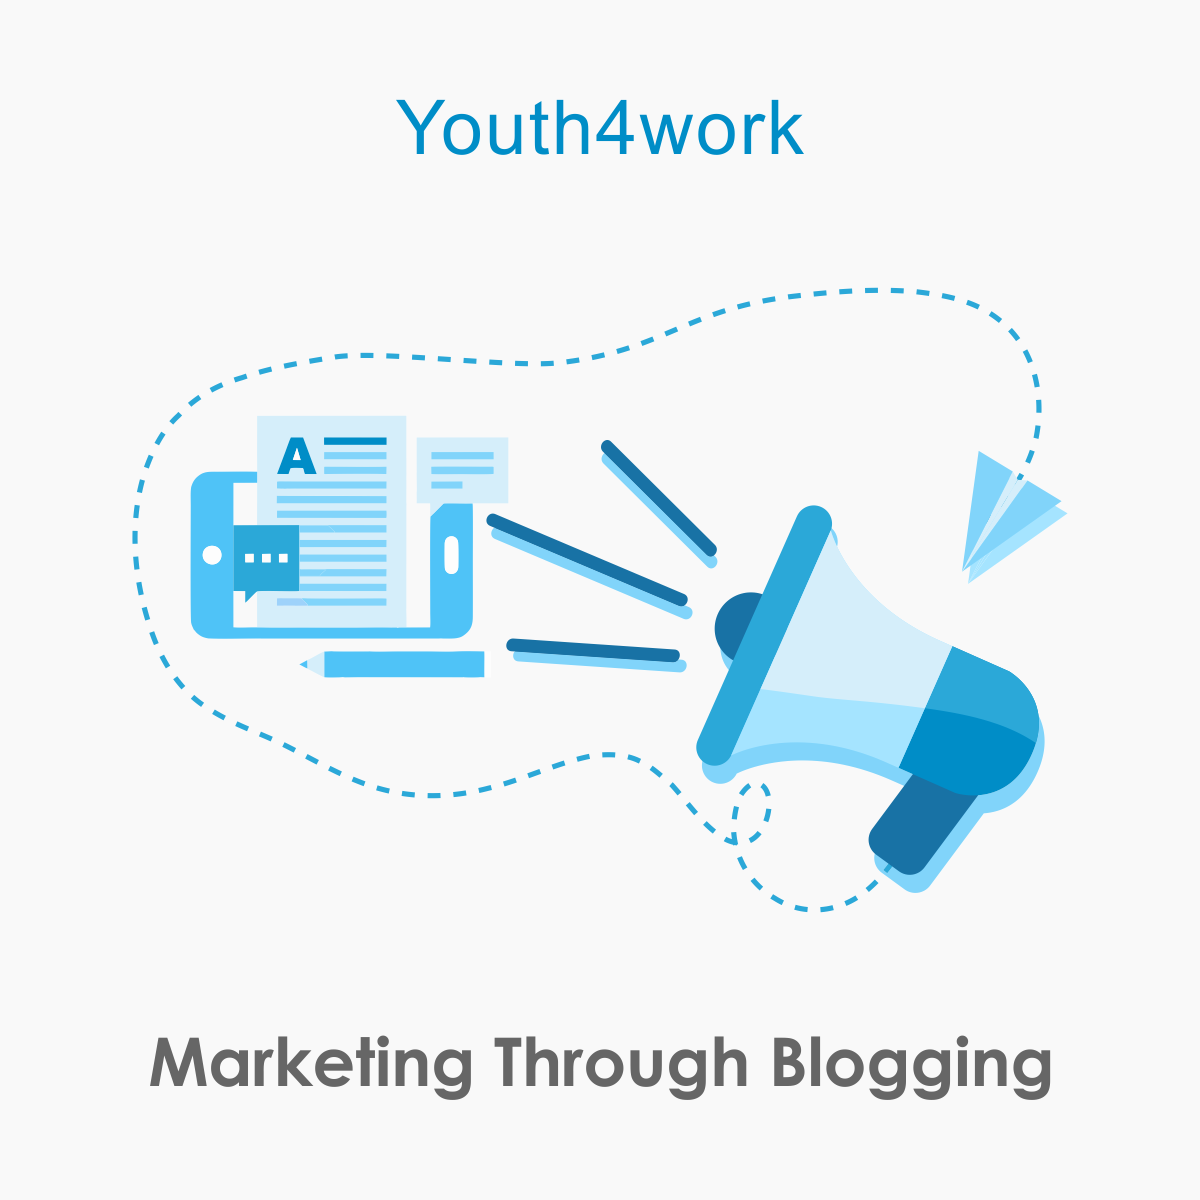 Marketing Through Blogging